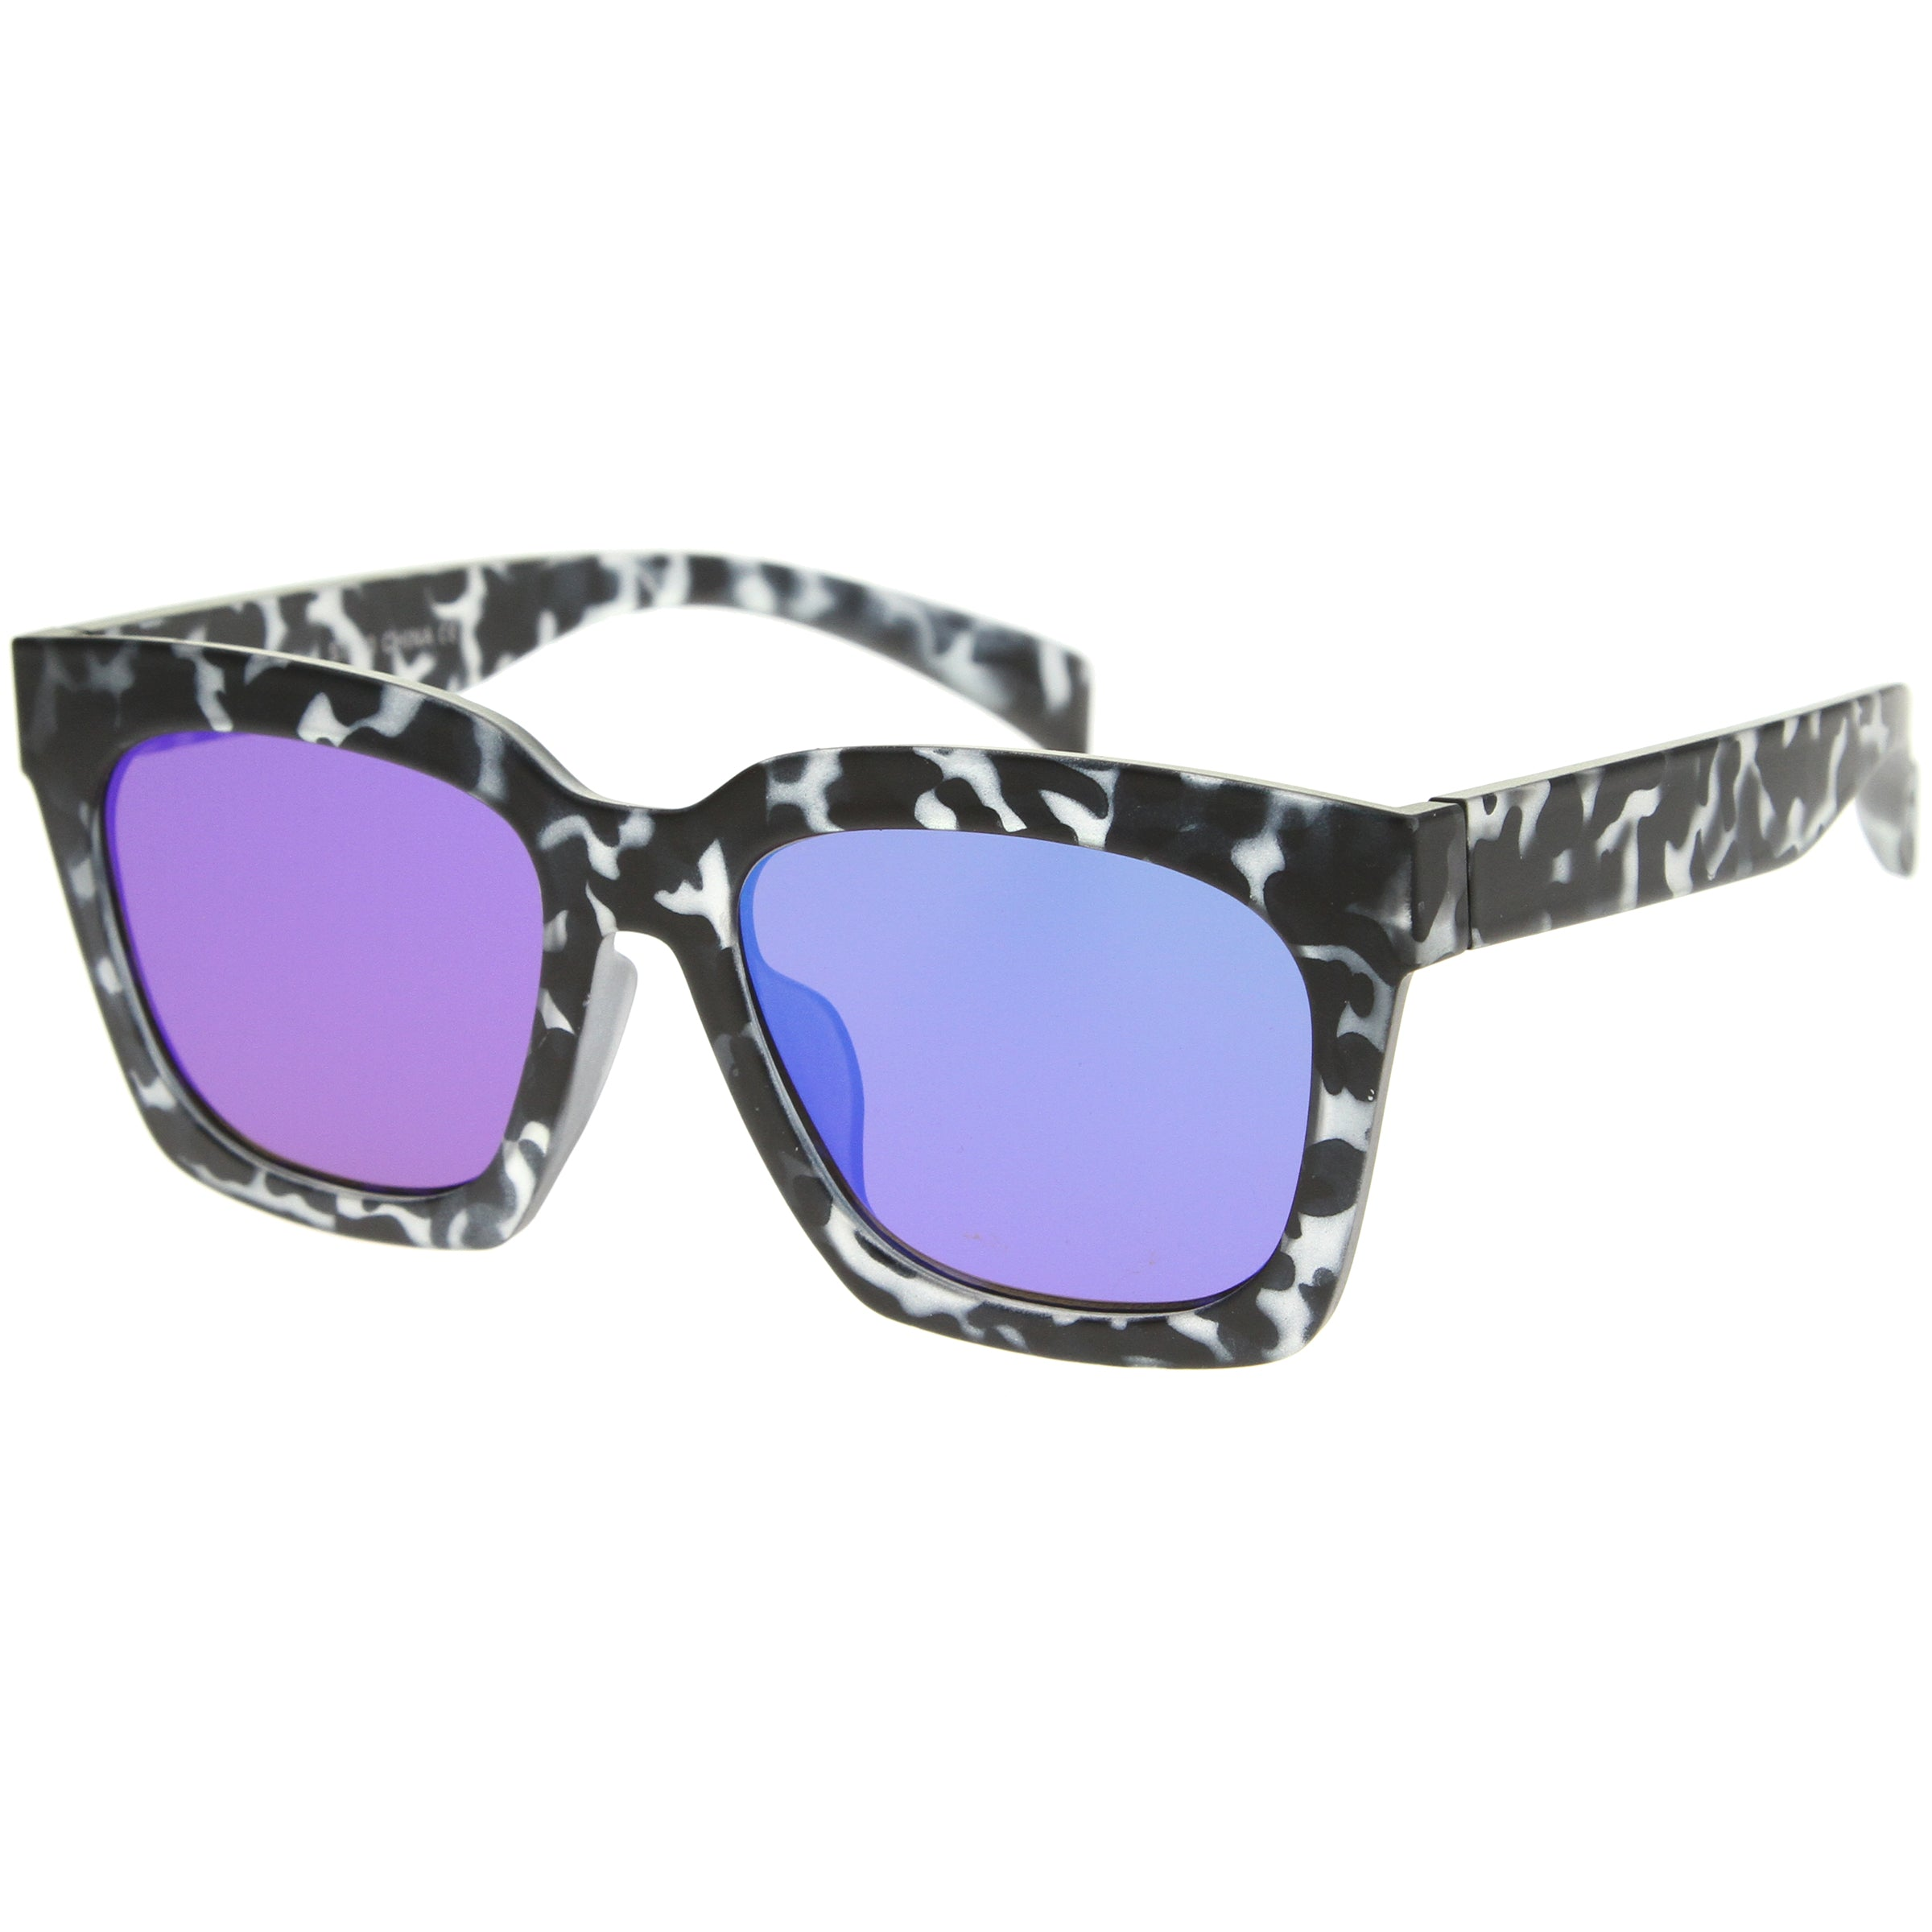 Retro Matte Horn Rimmed Colored Mirror Flat Lens Oversize Square Sunglasses 54mm - sunglass.la - 6